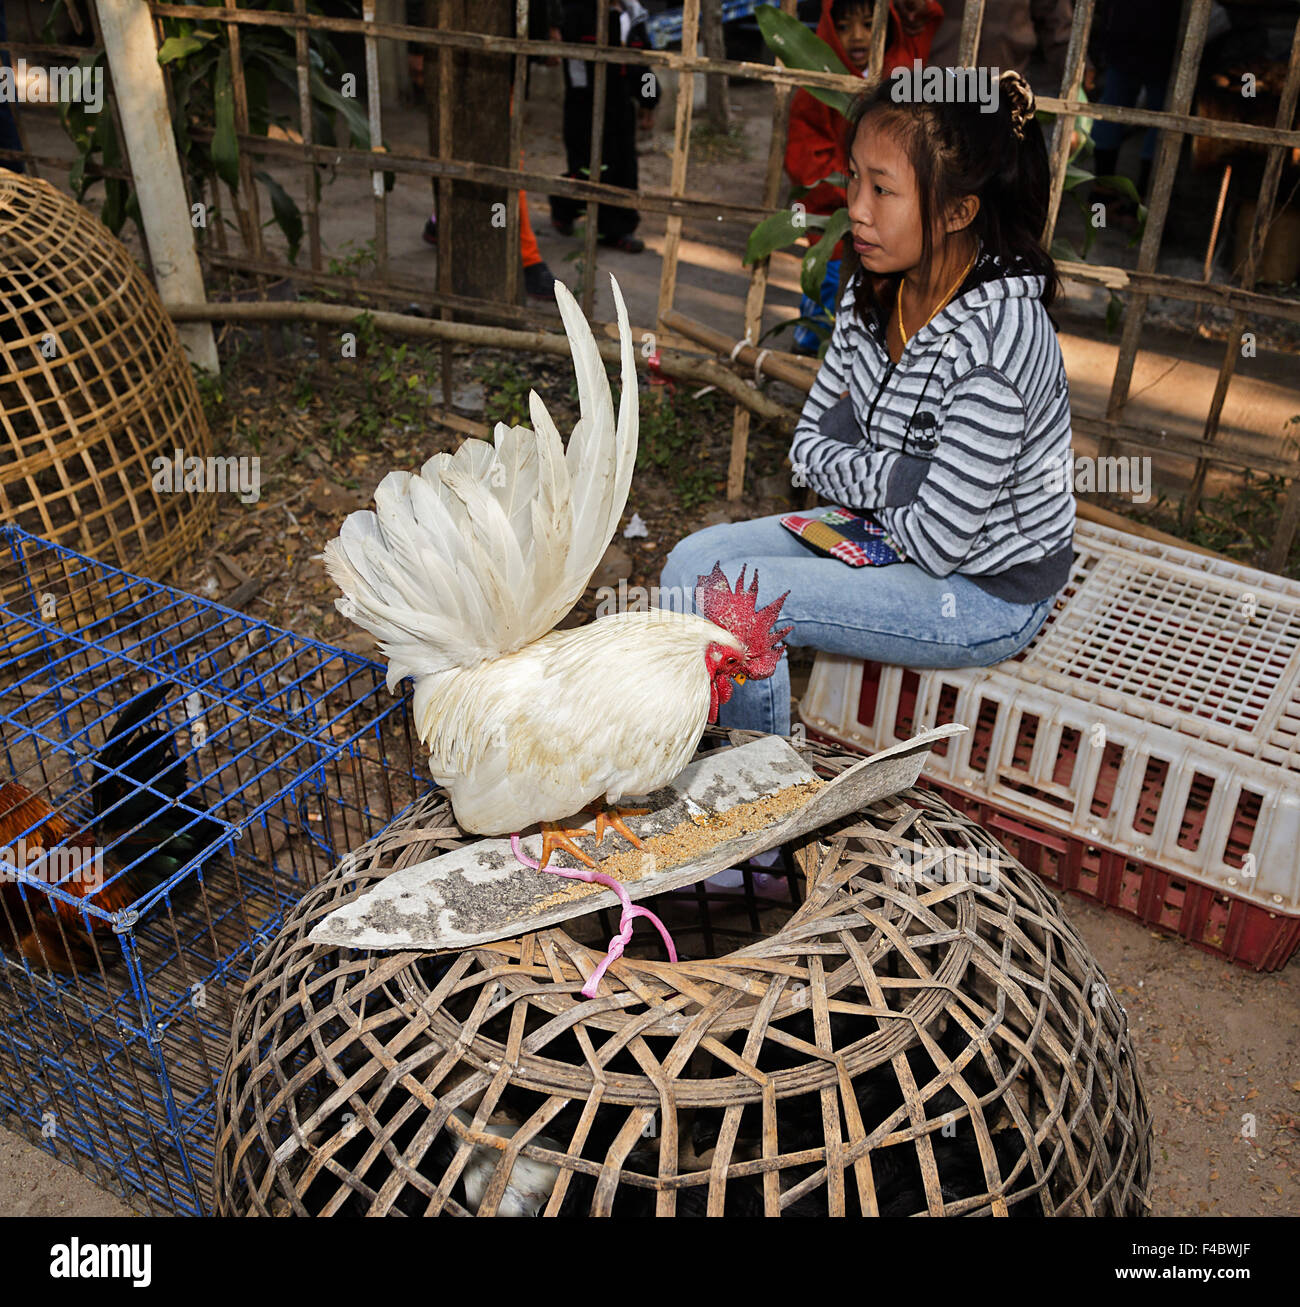 Poultry market - Stock Image